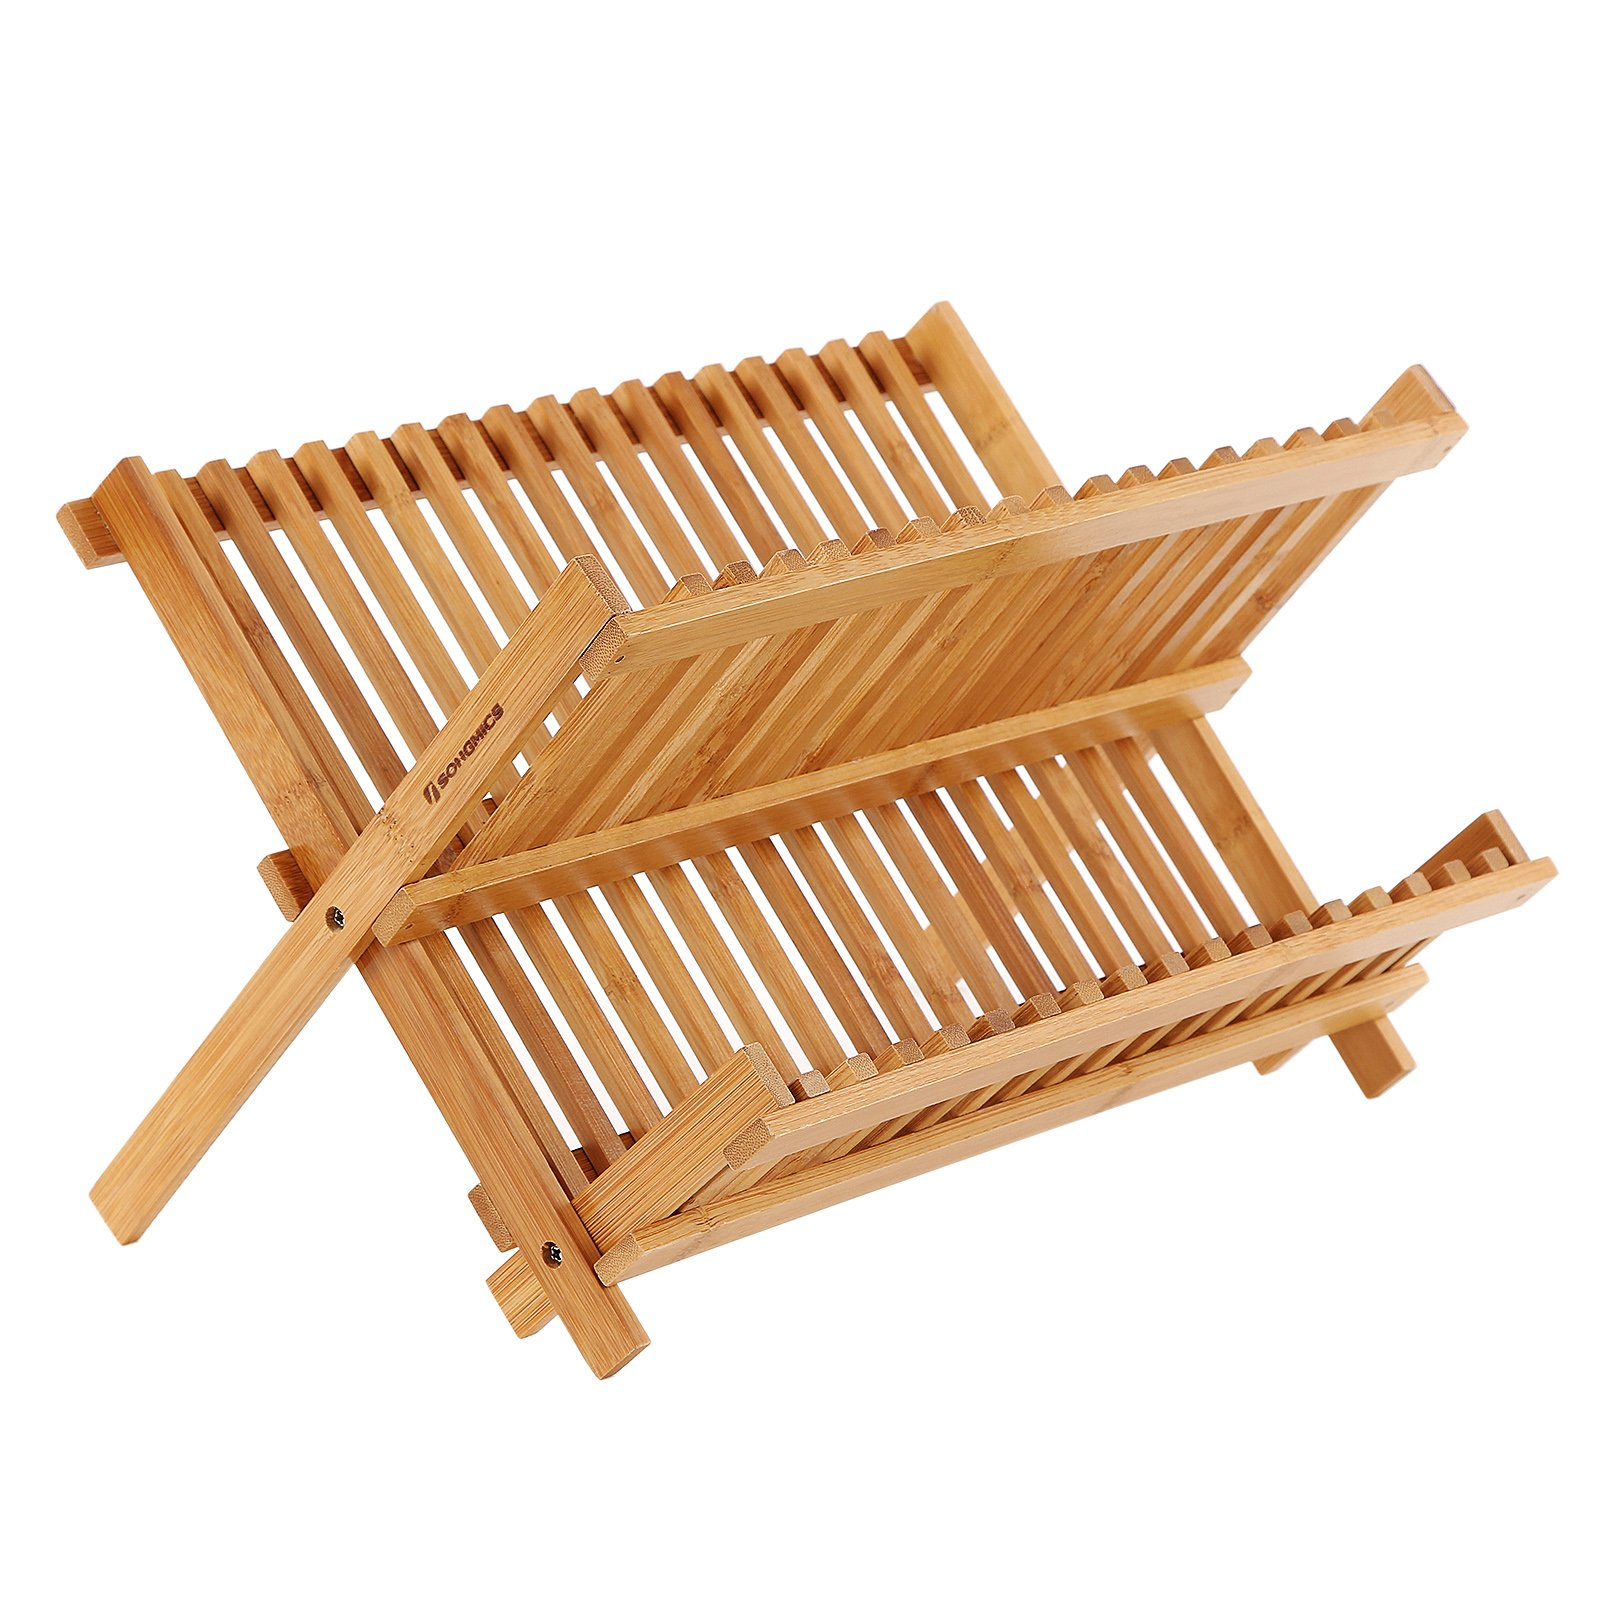 SONGMICS 100% Bamboo Dish Drying Rack,18 Slot Collapsible 2-tier Dish Cup Holder,Folding Utensil Drainer,Holds 18 Dish 3-6 Cups for Kitchen Restaurant UKAB901